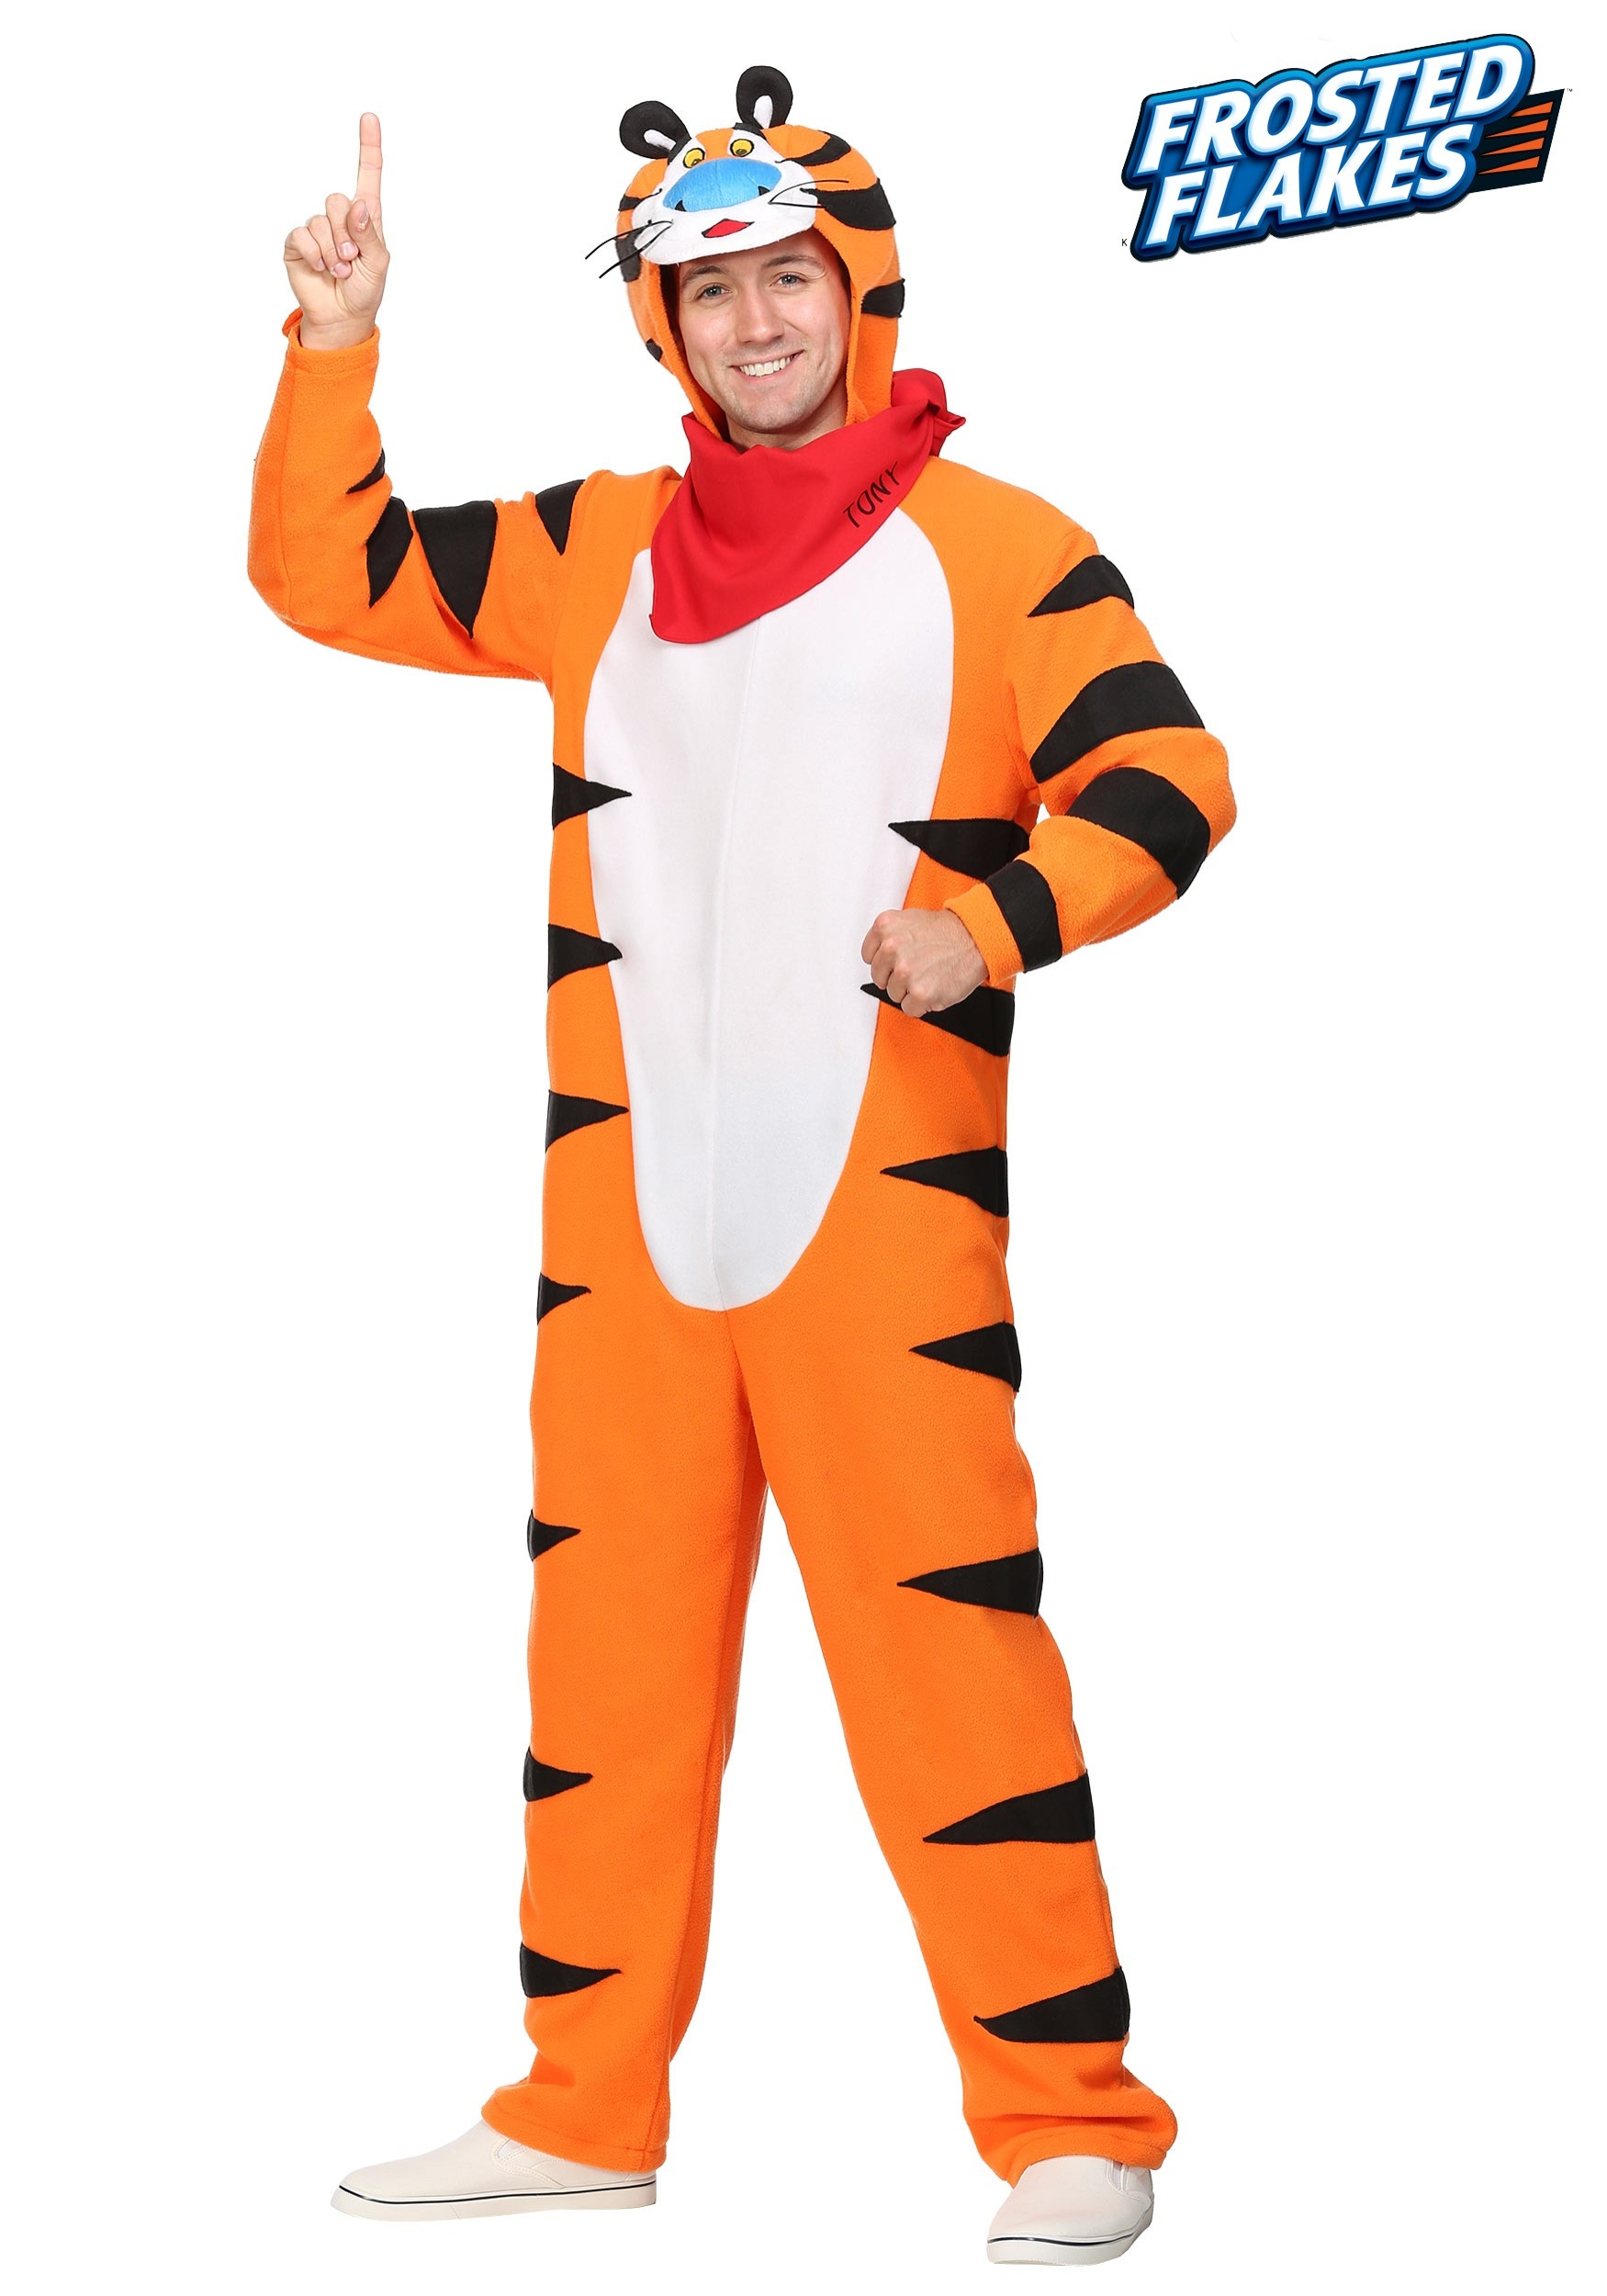 Frosted Flakes Tony the Tiger Plus Size Menu0027s Costume  sc 1 st  Halloween Costumes & Frosted Flakes Tony the Tiger Plus Size Costume for Men 2X